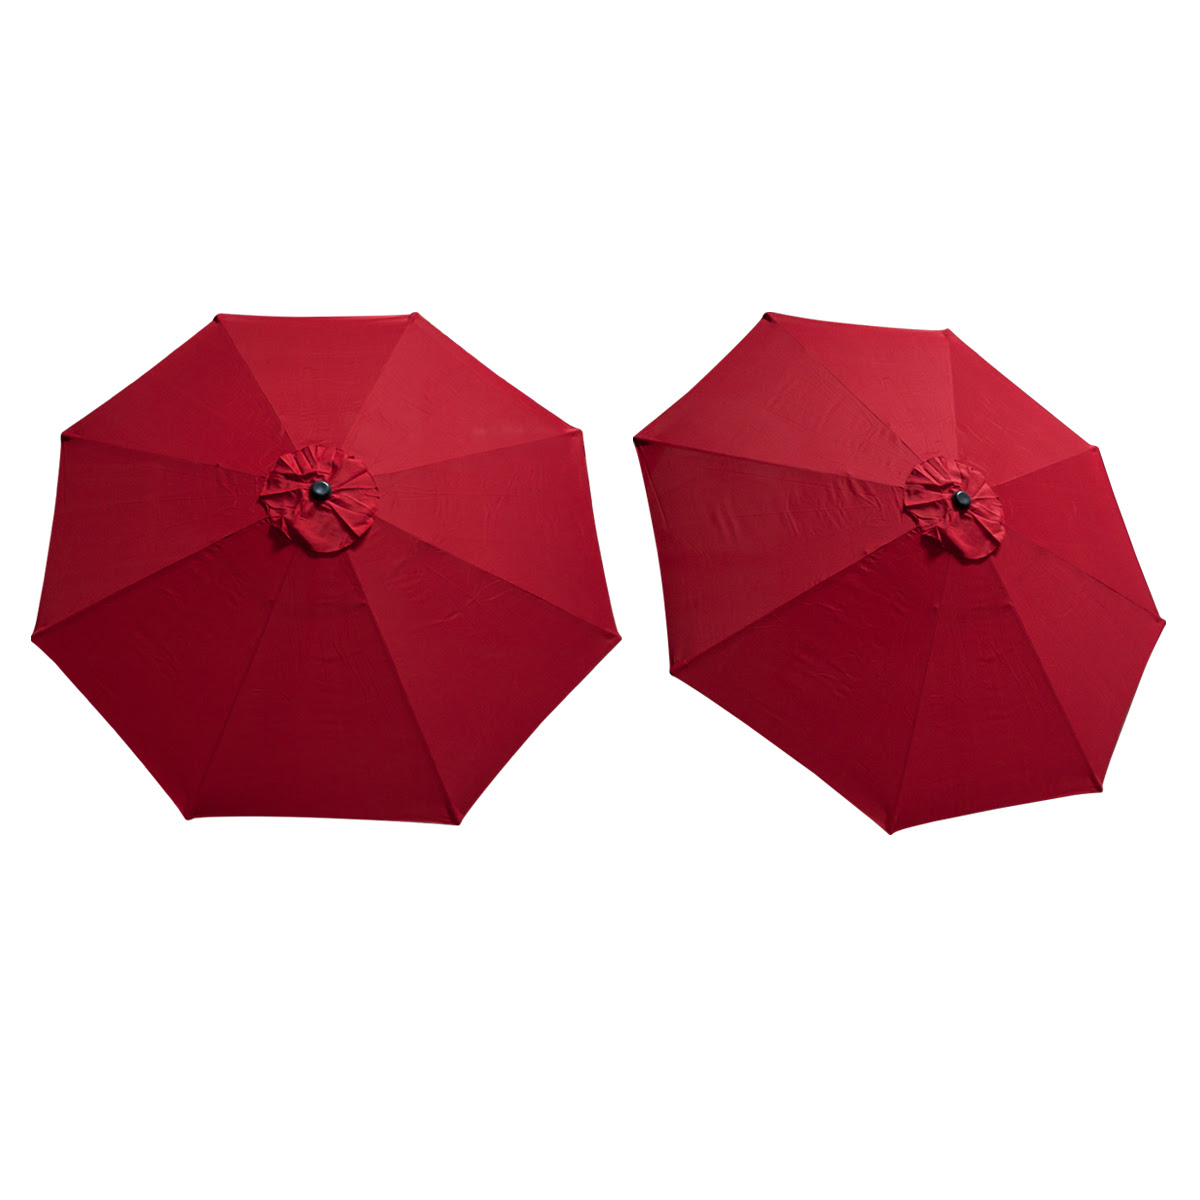 Replacement Cover Canopy 9 FT 8 Ribs Umbrella Red Top ...